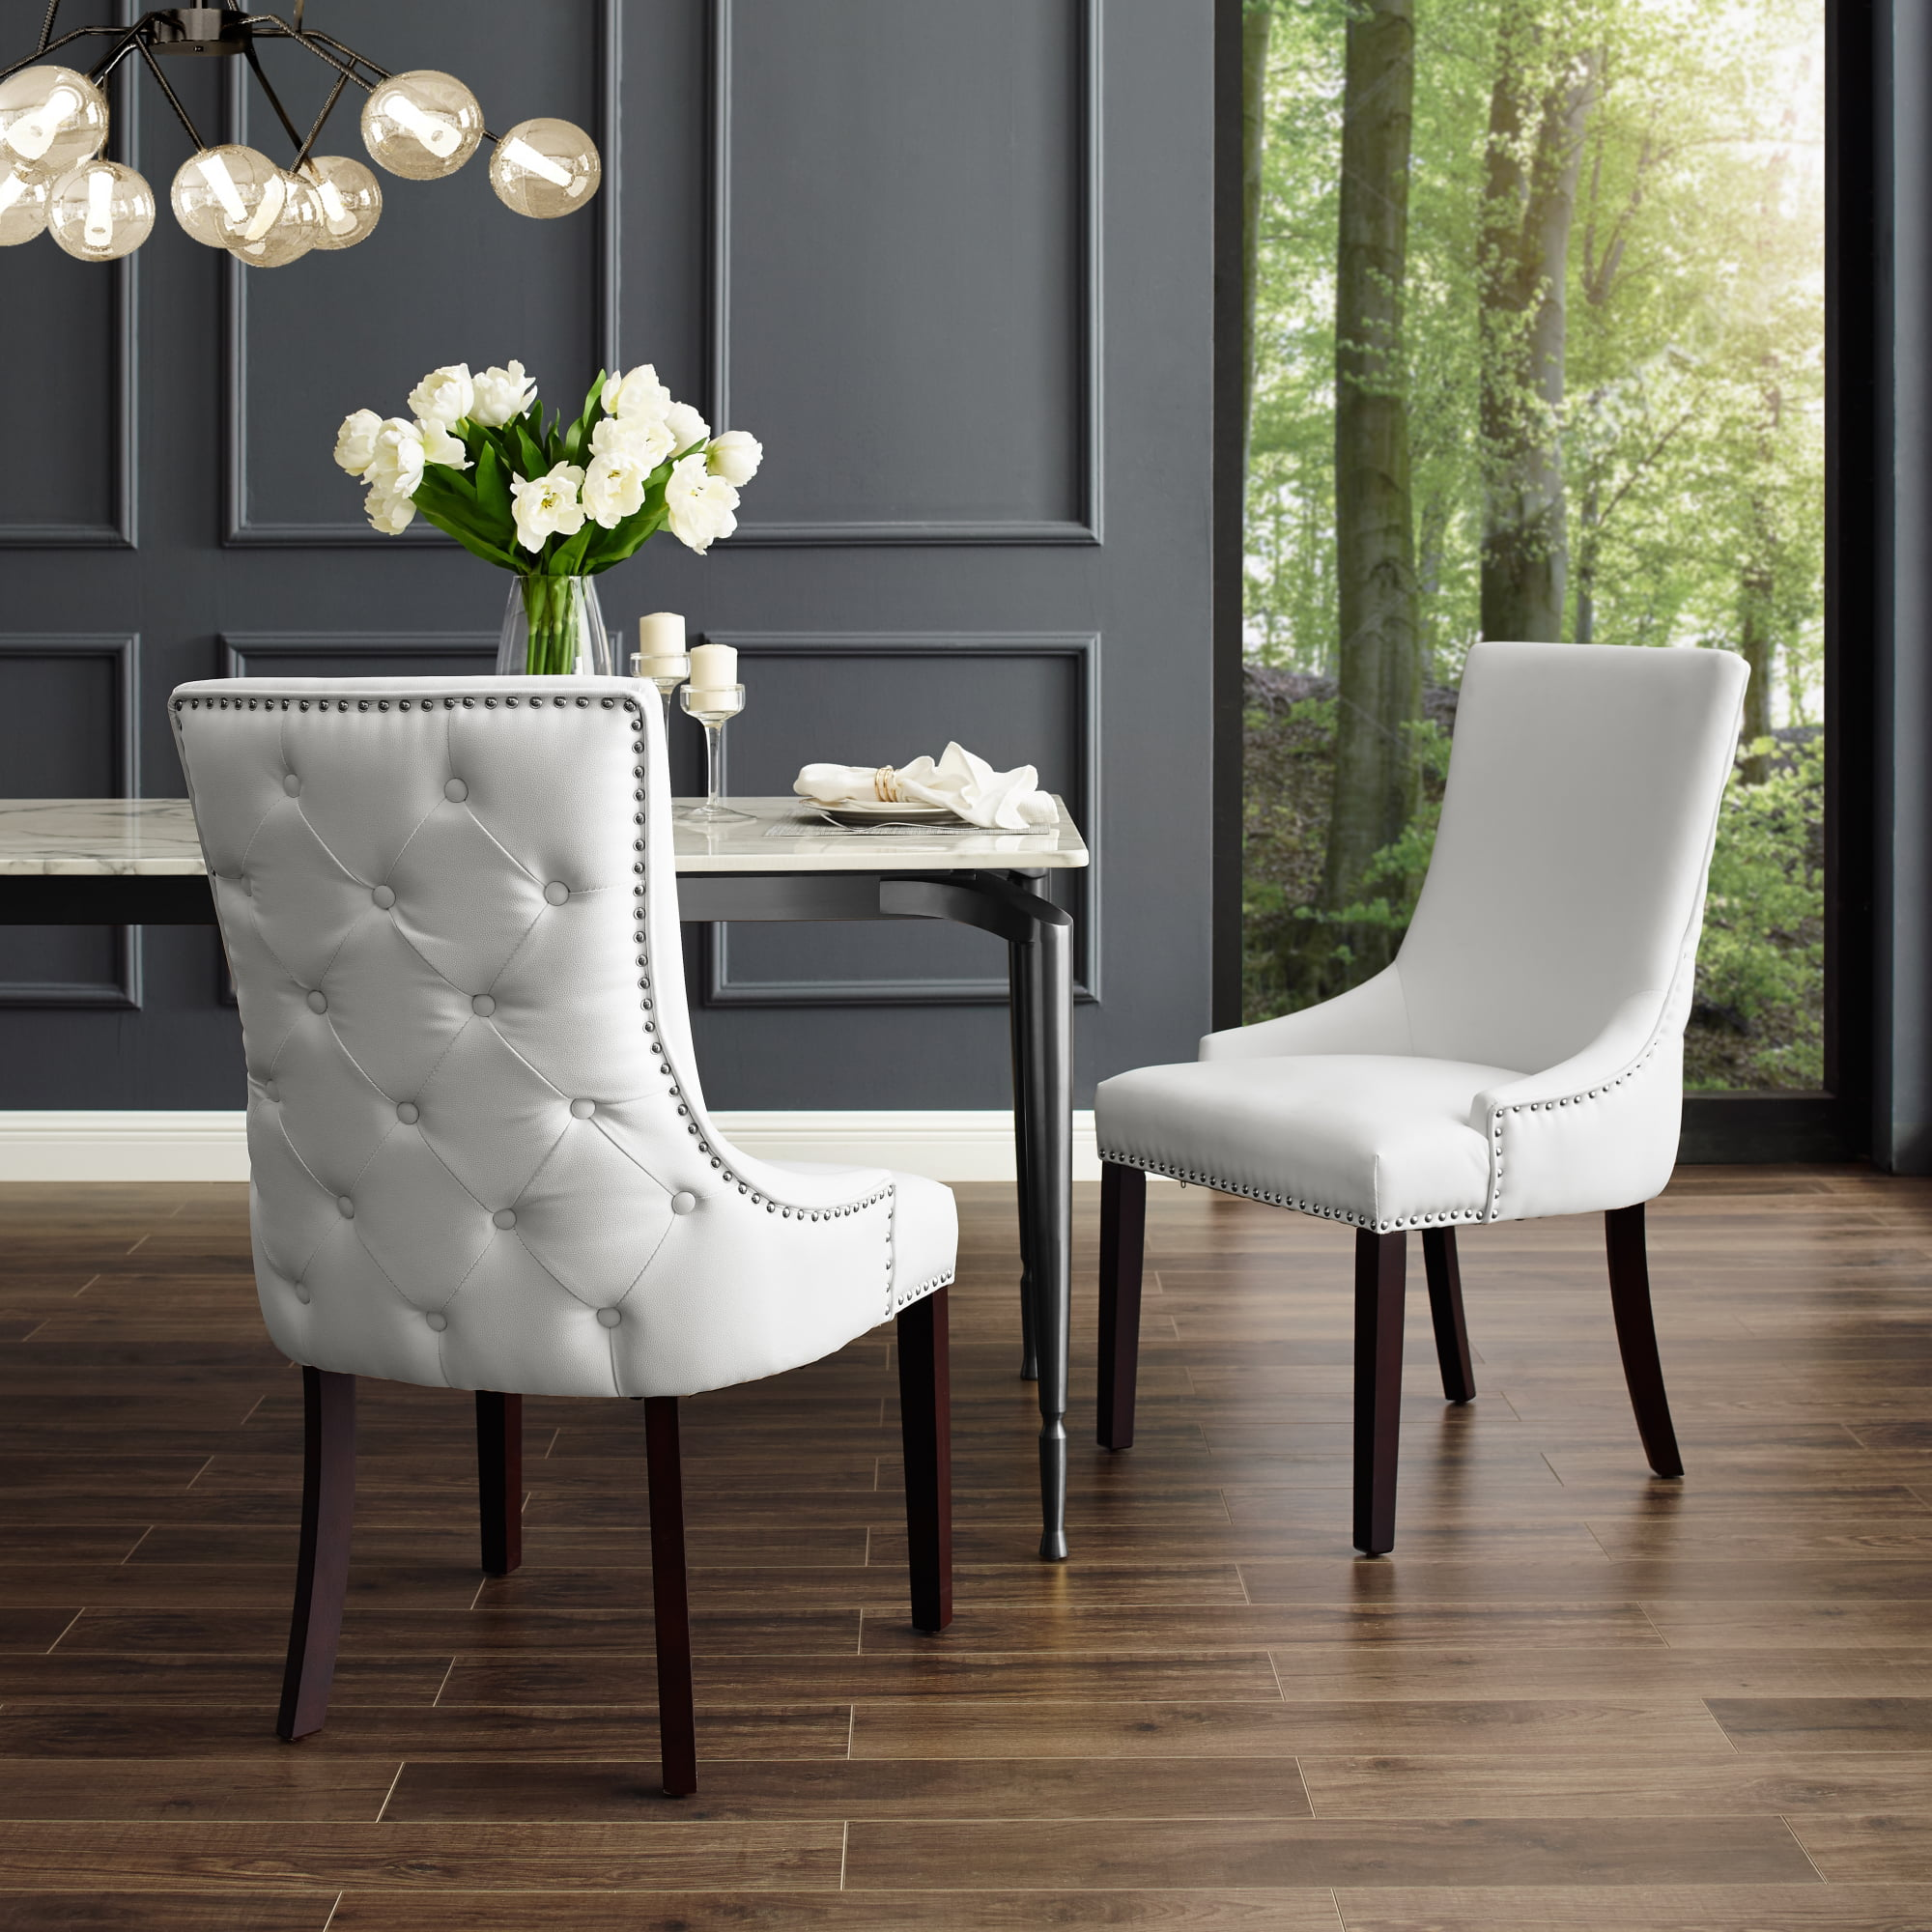 Free Kitchen Tufted Dining Bench With Back Ideas With: Annabelle White Leather PU Dining Chair - Set Of 2